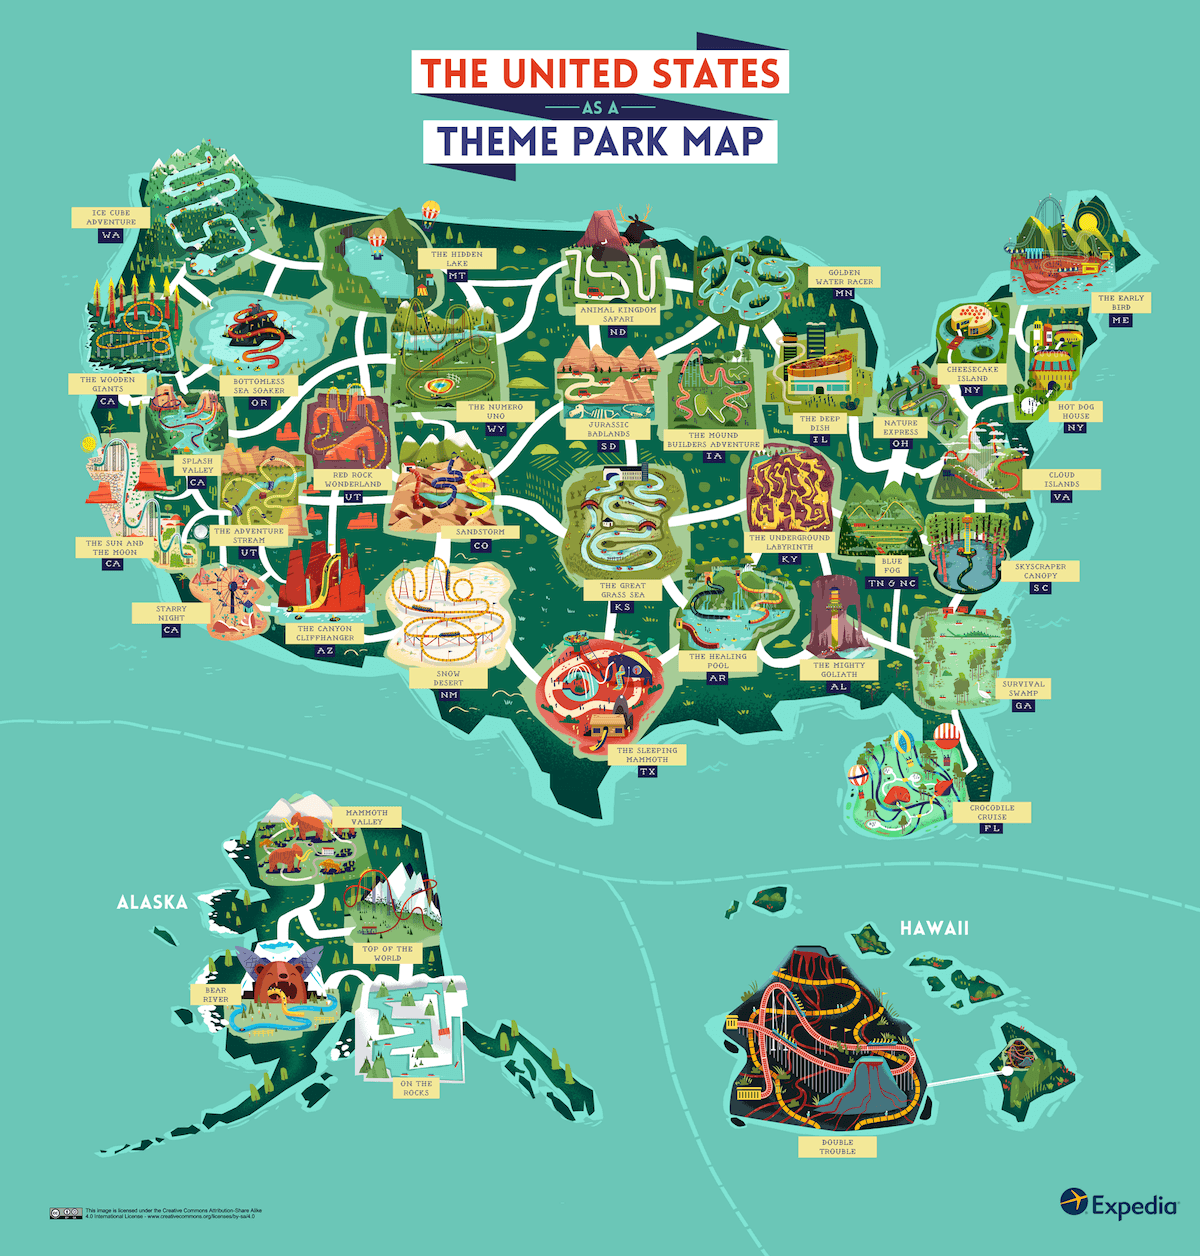 See the USA as an outdoor theme park with this colourful map